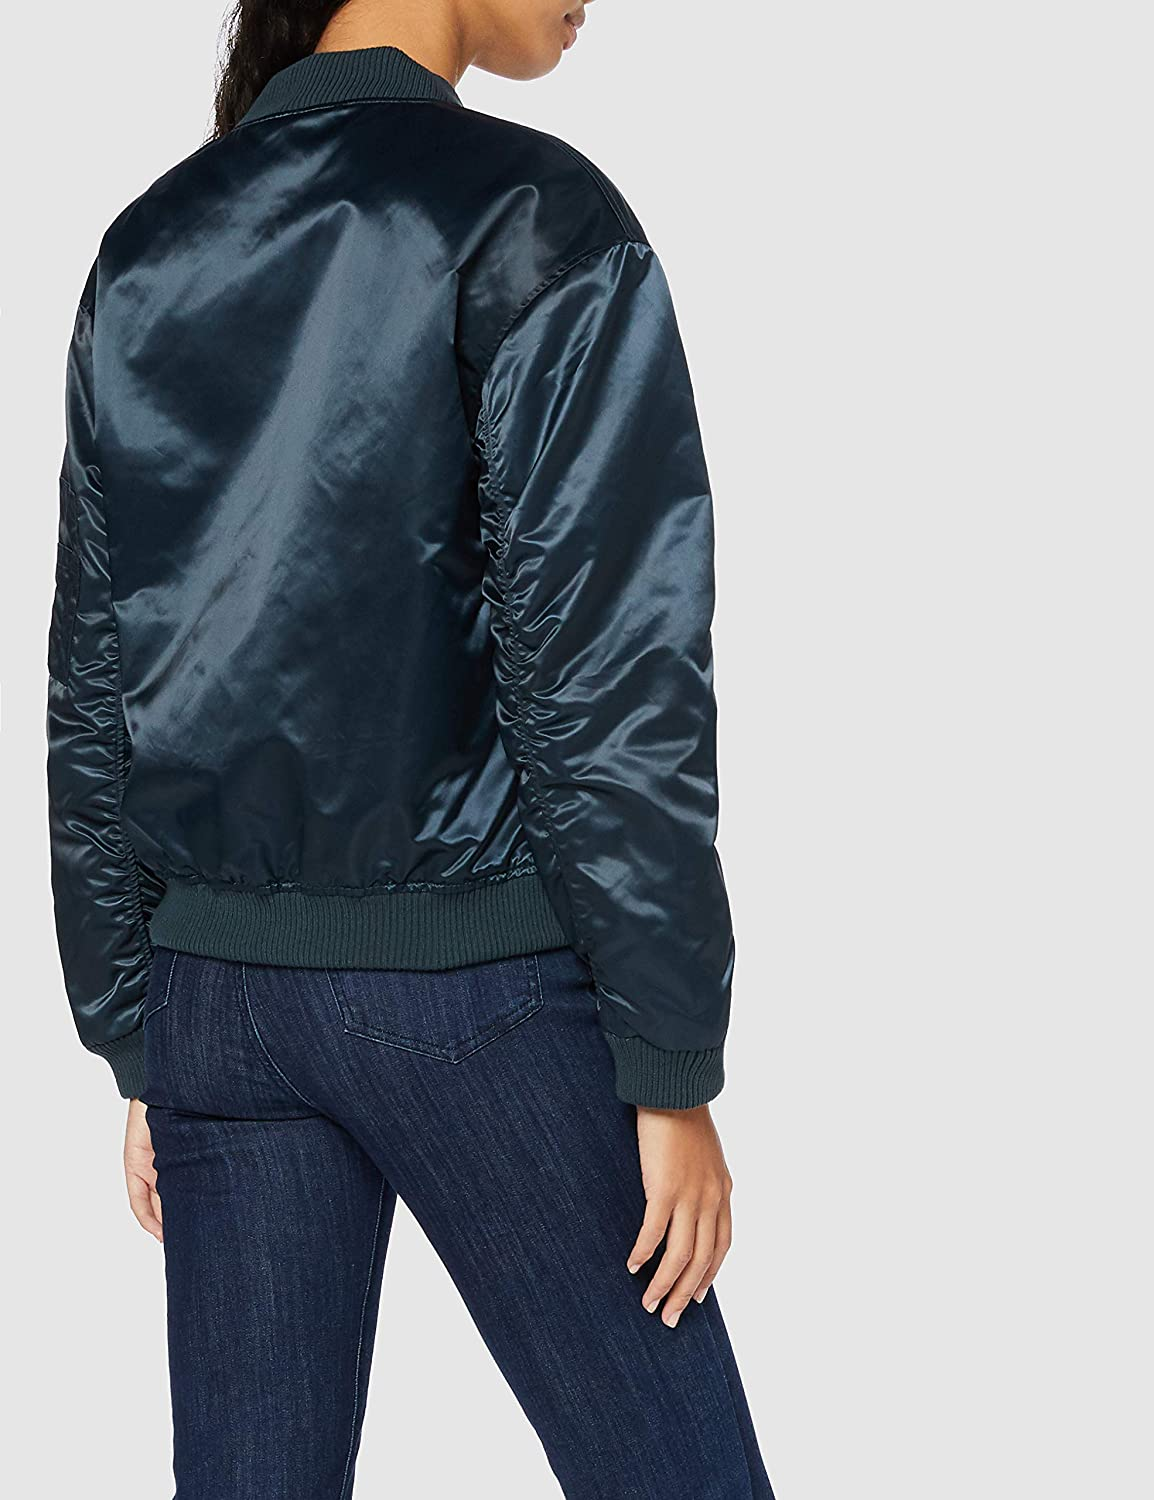 Womens Bomber Jacket Satin Long Sleeves Crew Neck Brand find